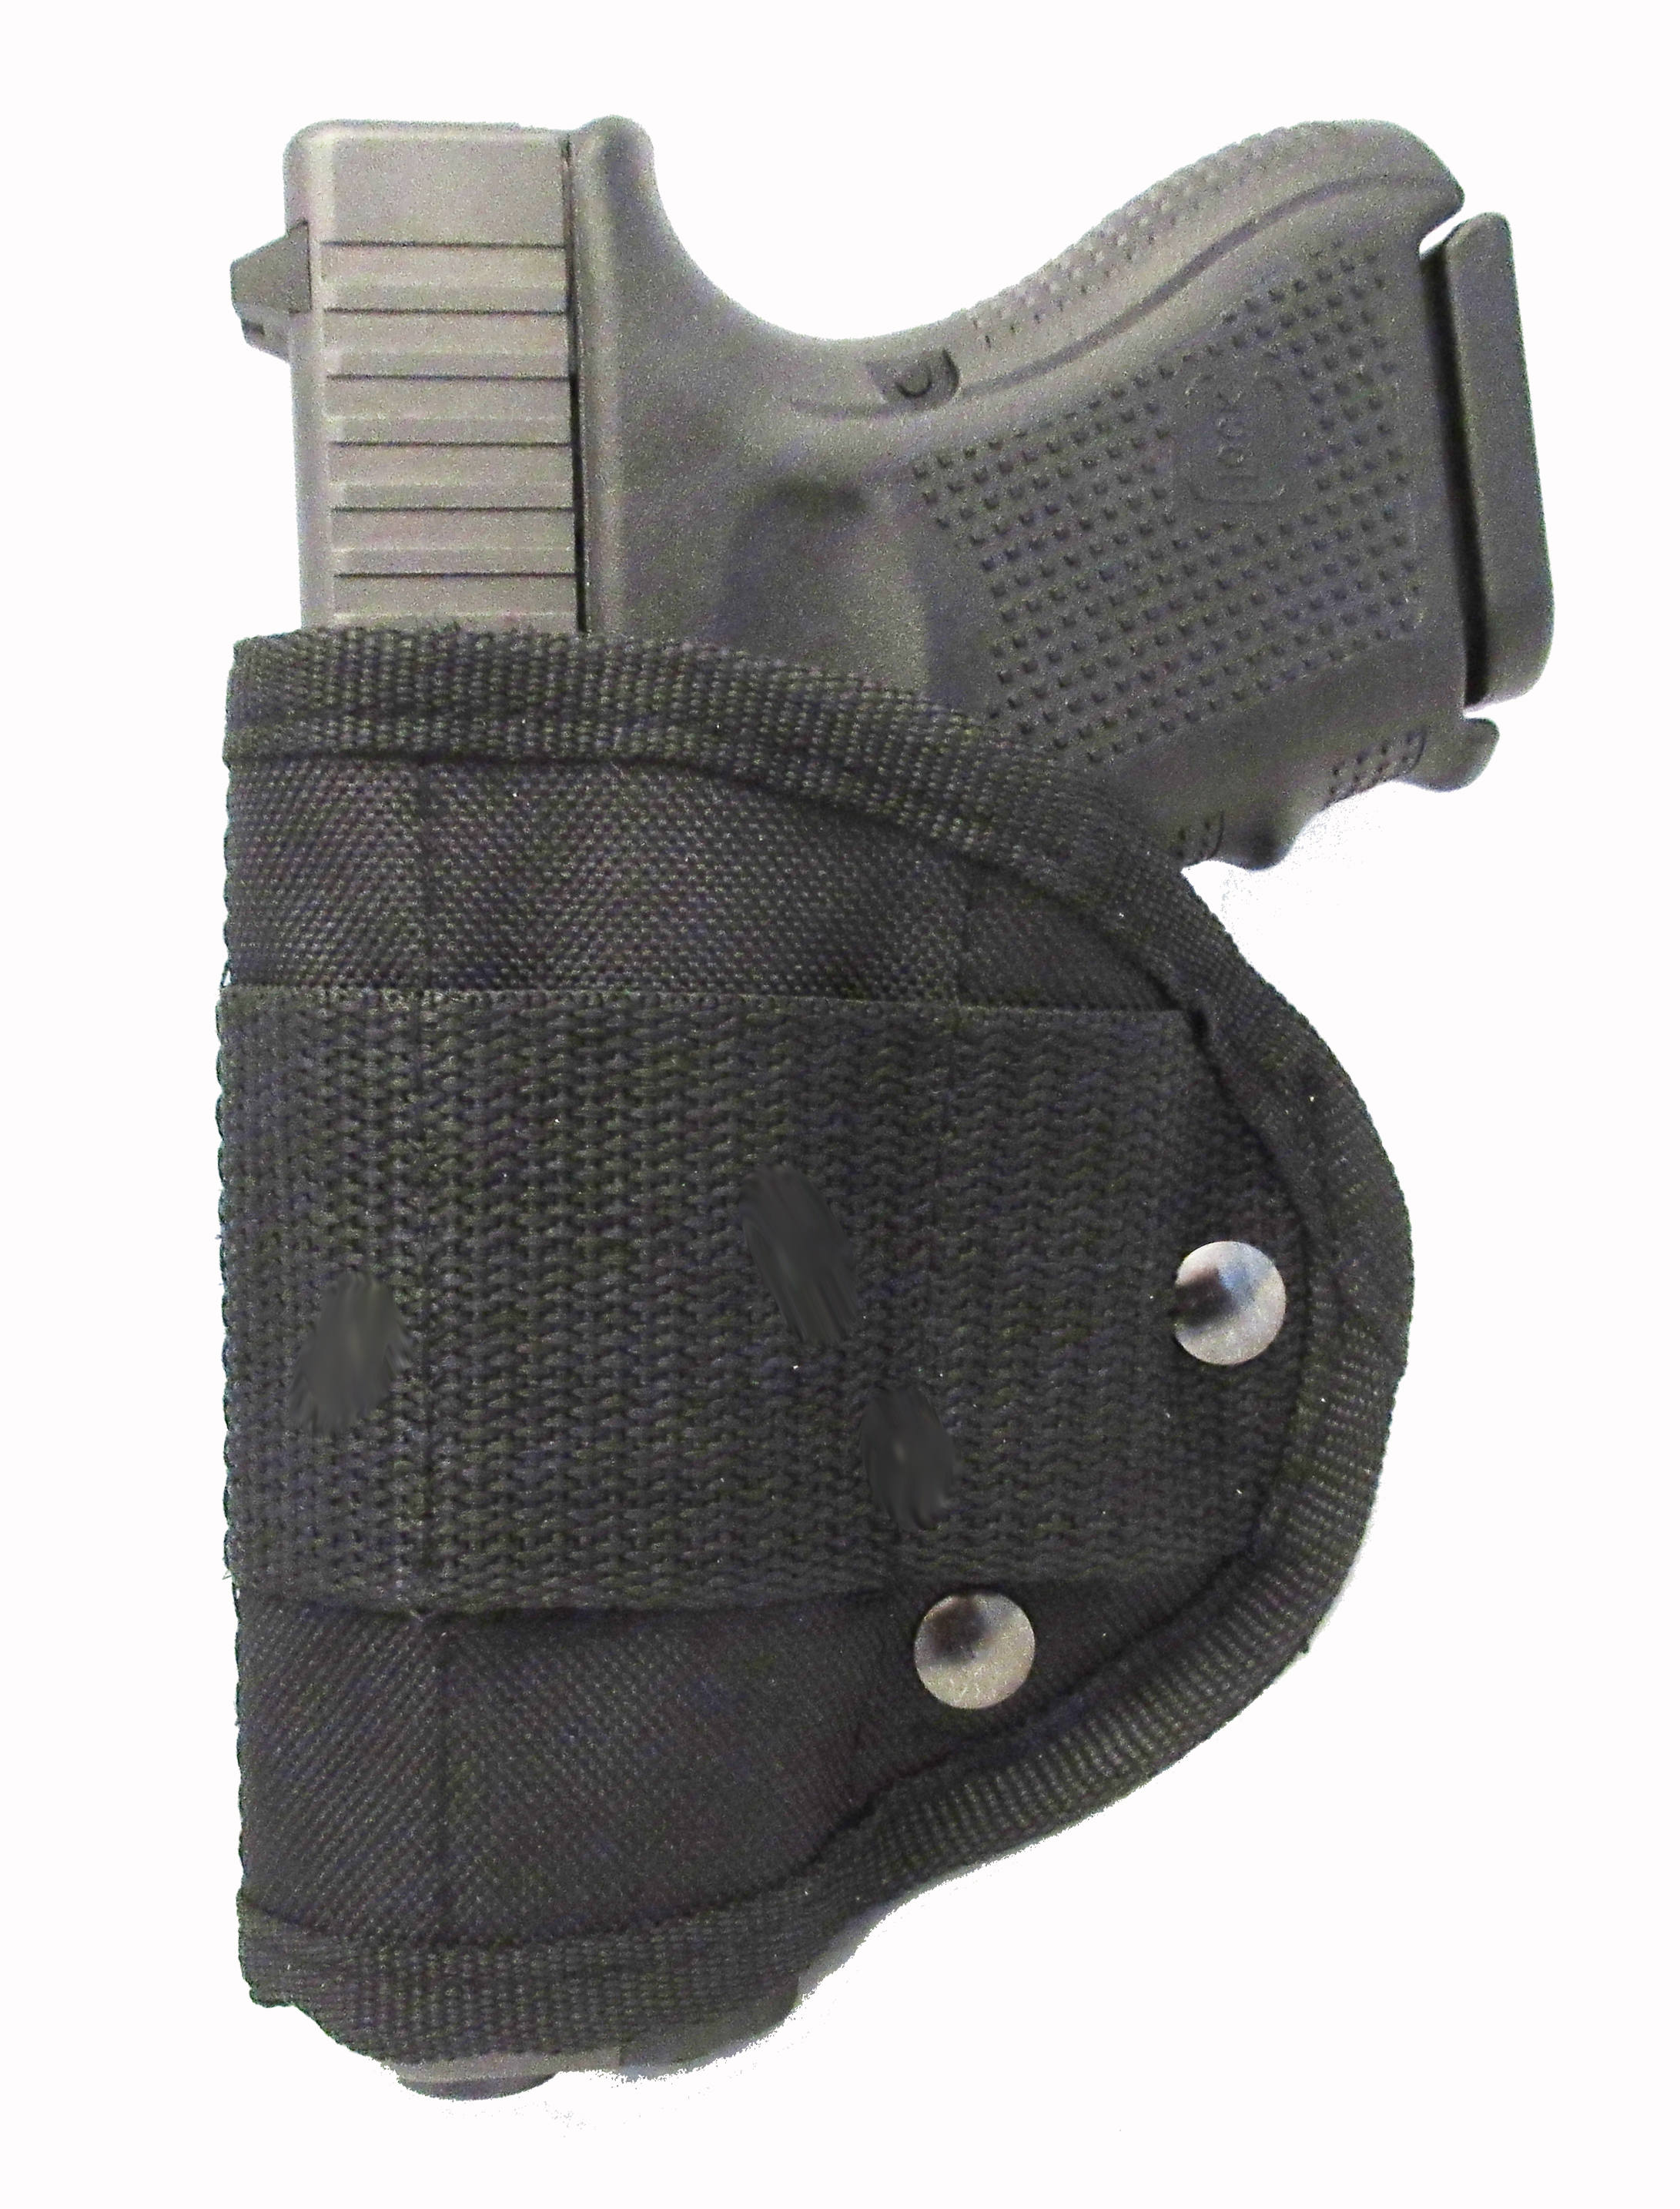 Inside Waistband Poly Woven Sling Holster Fits Glock 26 27 28 29 30 33 39 IWB (M2) by Garrison Grip by Garrison Grip